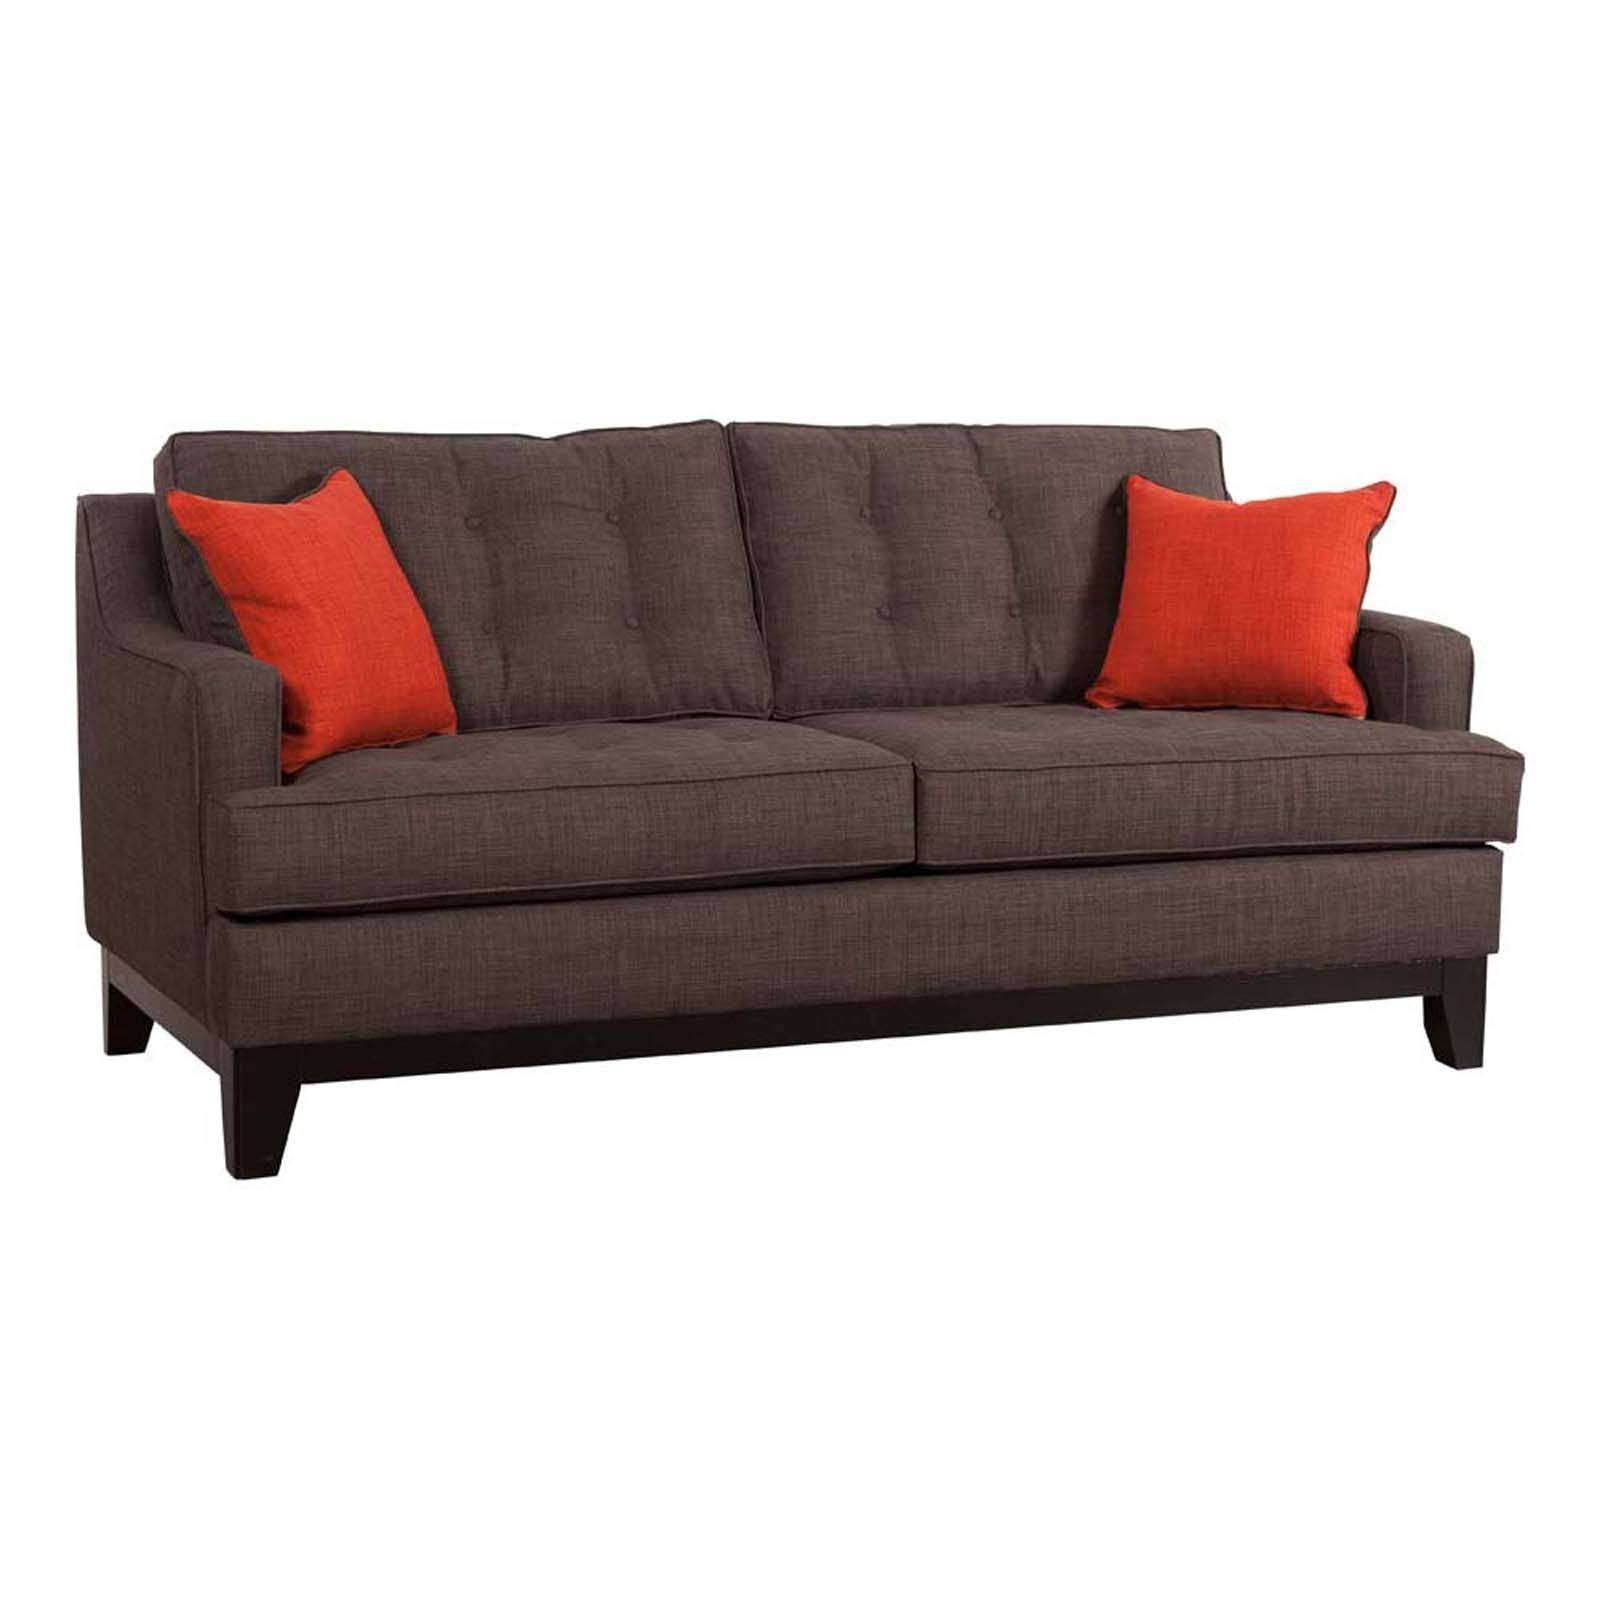 Chicago sofa charcoal burnt orange for Charcoal sofa